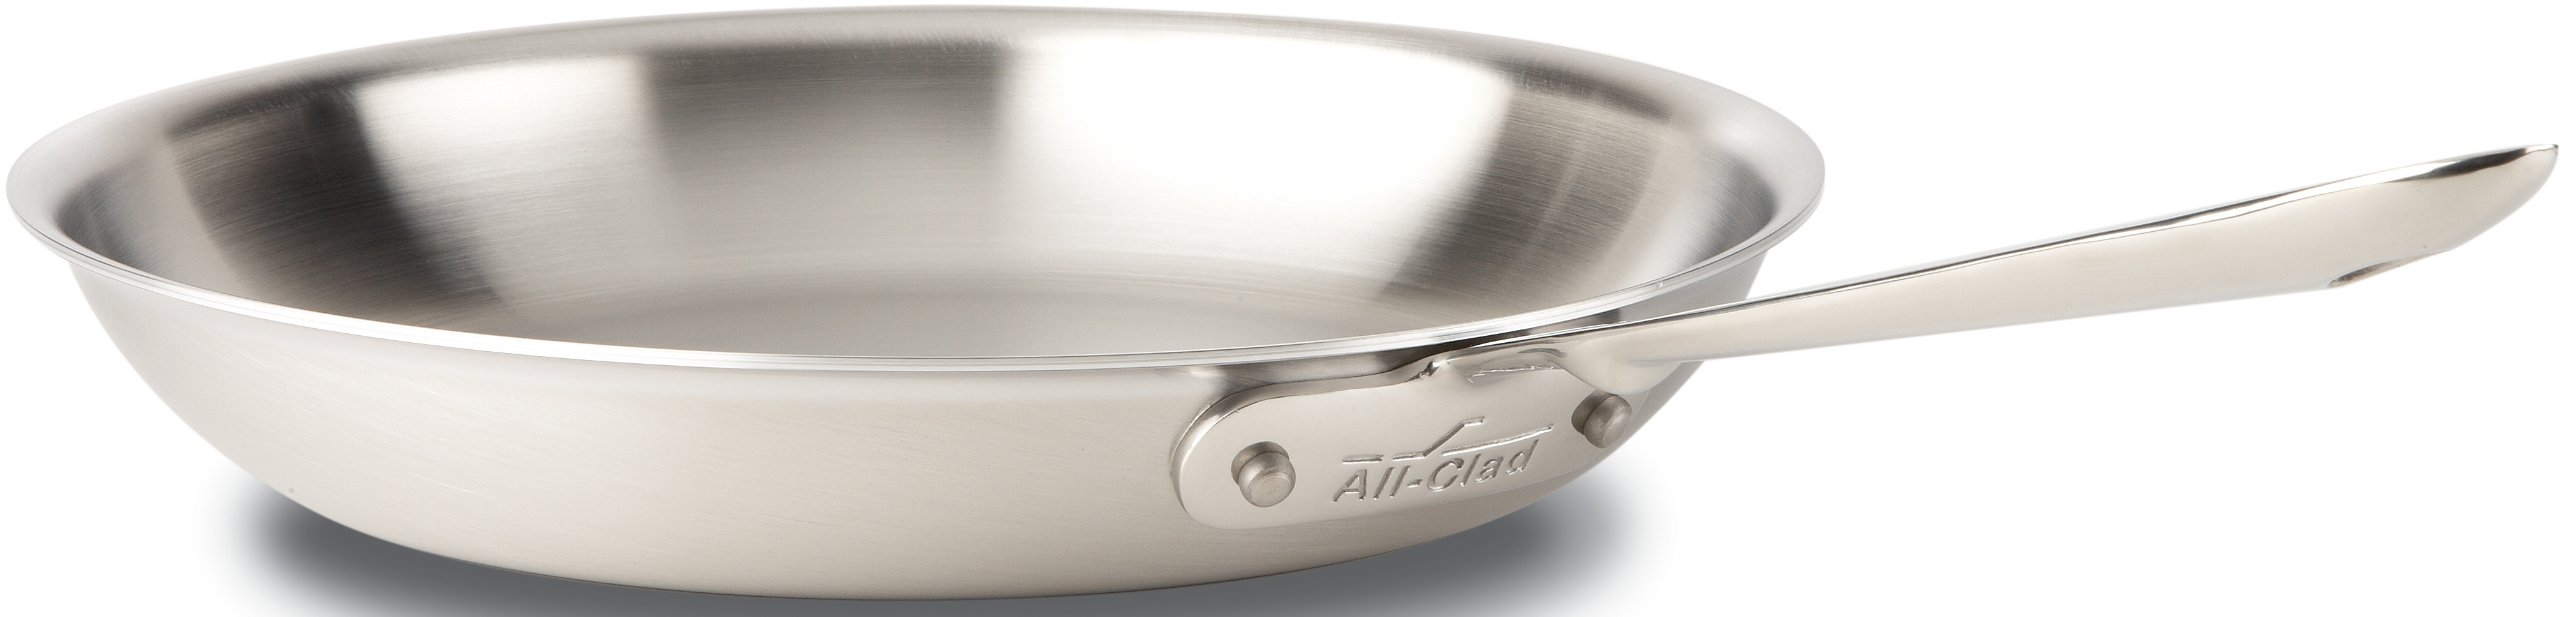 All-Clad BD55112 D5 Brushed 18/10 Stainless Steel 5-Ply Bonded Dishwasher Safe Fry Pan Saute Pan Cookware, 12-Inch, Silver